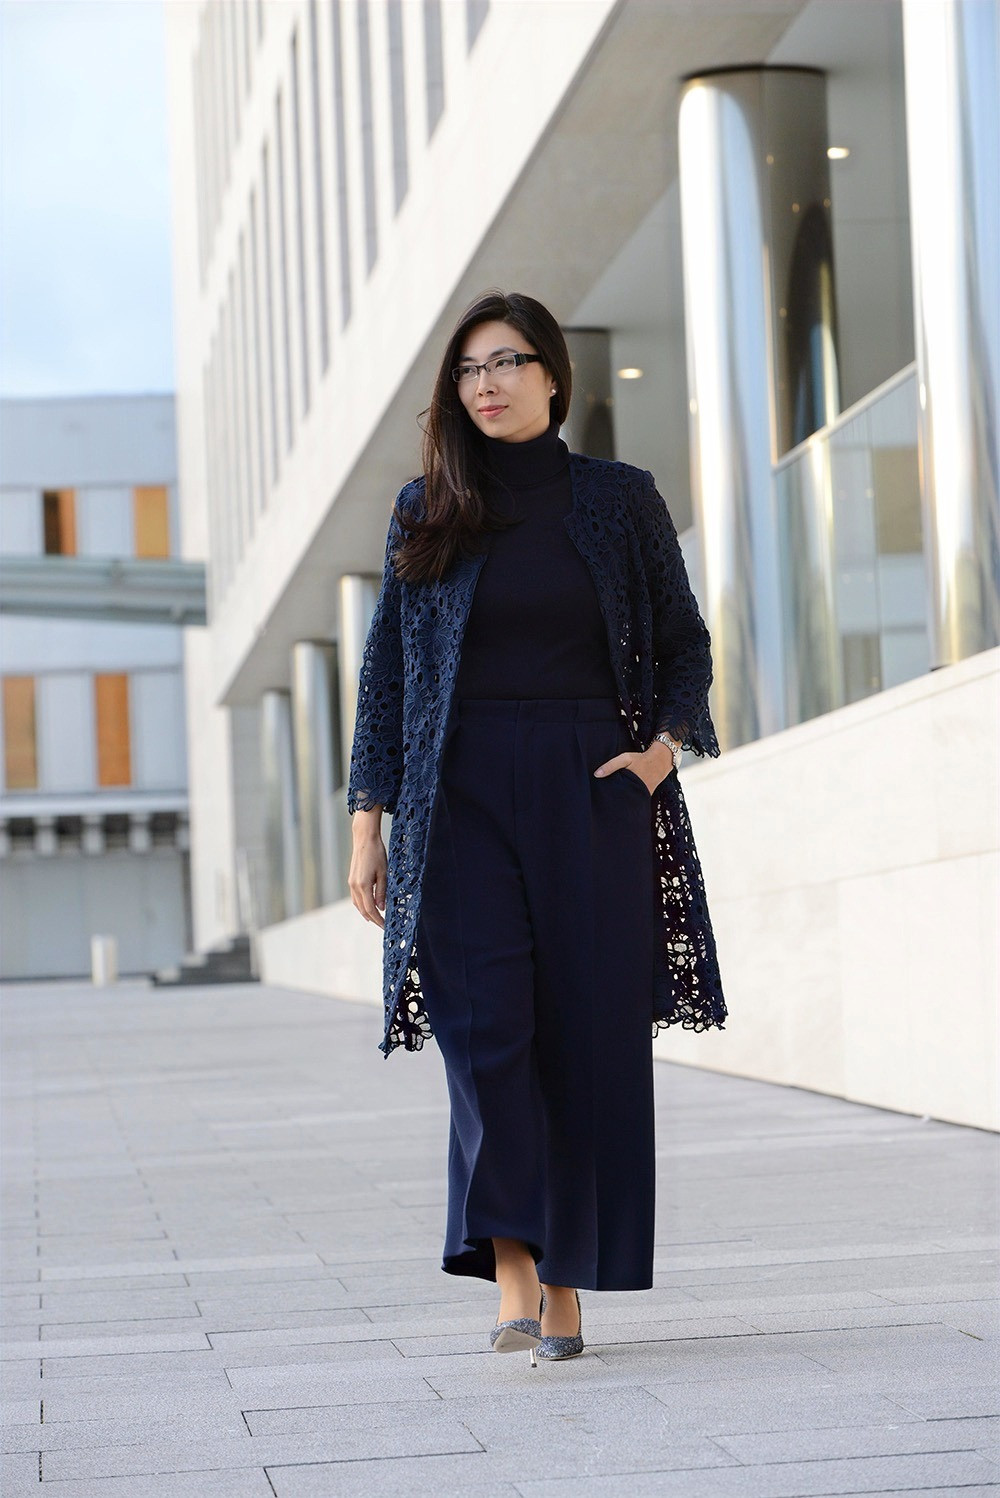 Business woman wearing a Gerard Darel navy lace coat styled with Roland Mouret navy pants.